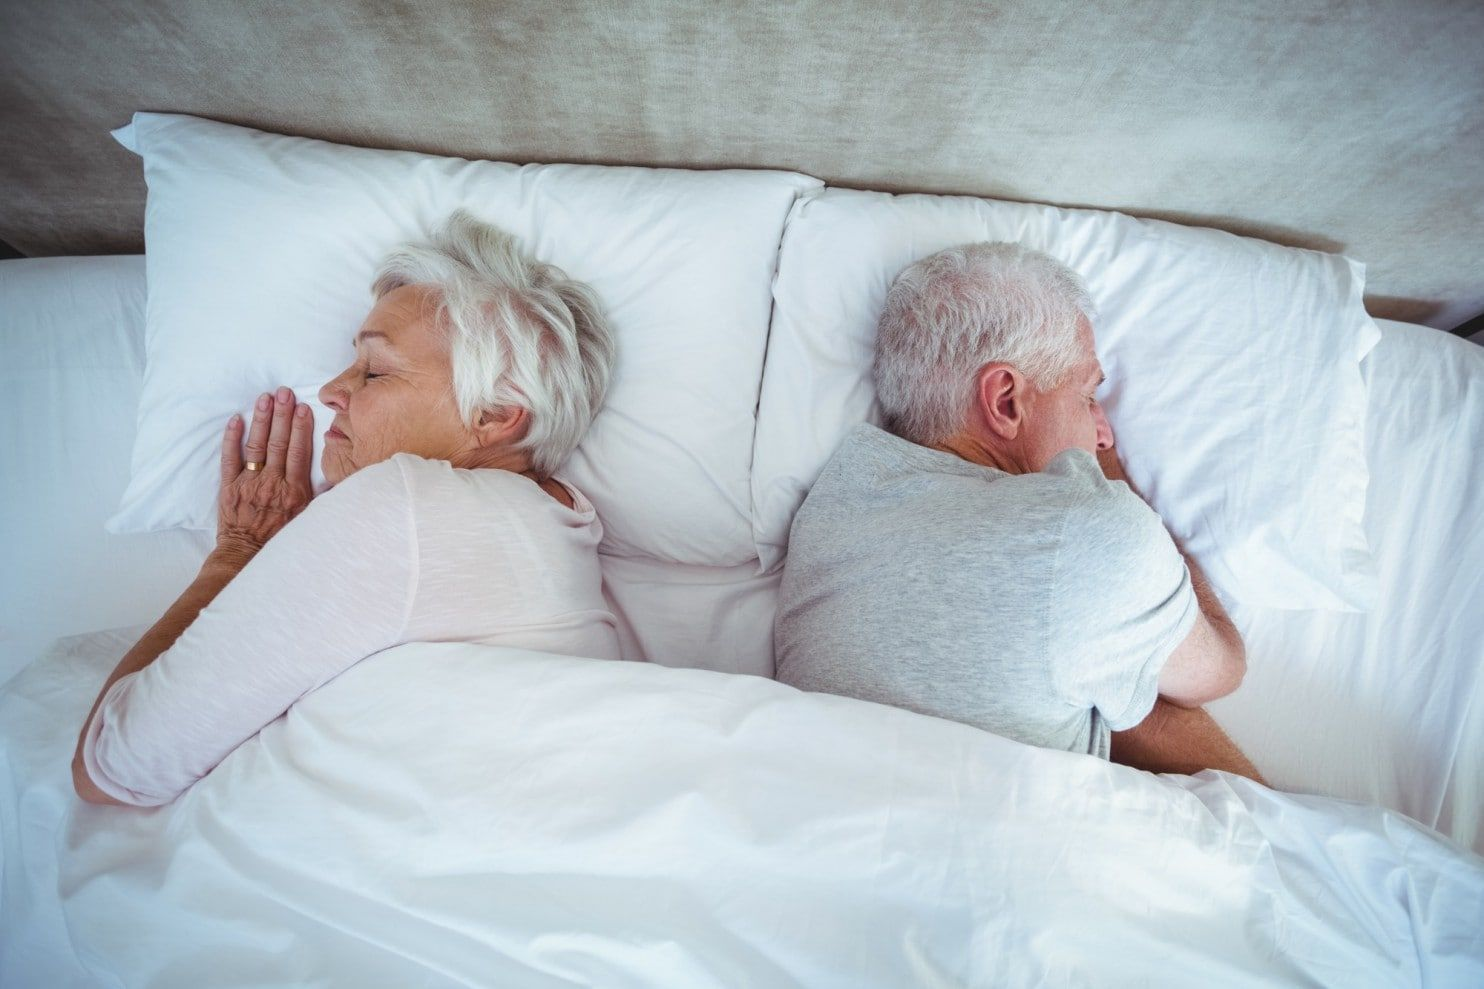 Aging can cause sleep problems but so can anxiety, health problems and medication side effects - by @healthierpeople Many older adults have sleep problems that can be caused by aging. But other issues also contribute to the prevalence of sleep complaints, and they should be discussed and investigated, experts say. https://www.washingtonpost.com/national/health-science/having-trouble-sleeping-it-is-not-just-because-of-aging/2017/11/24/ec2a149a-c63f-11e7-aae0-cb18a8c29c65_story.html #sleep…